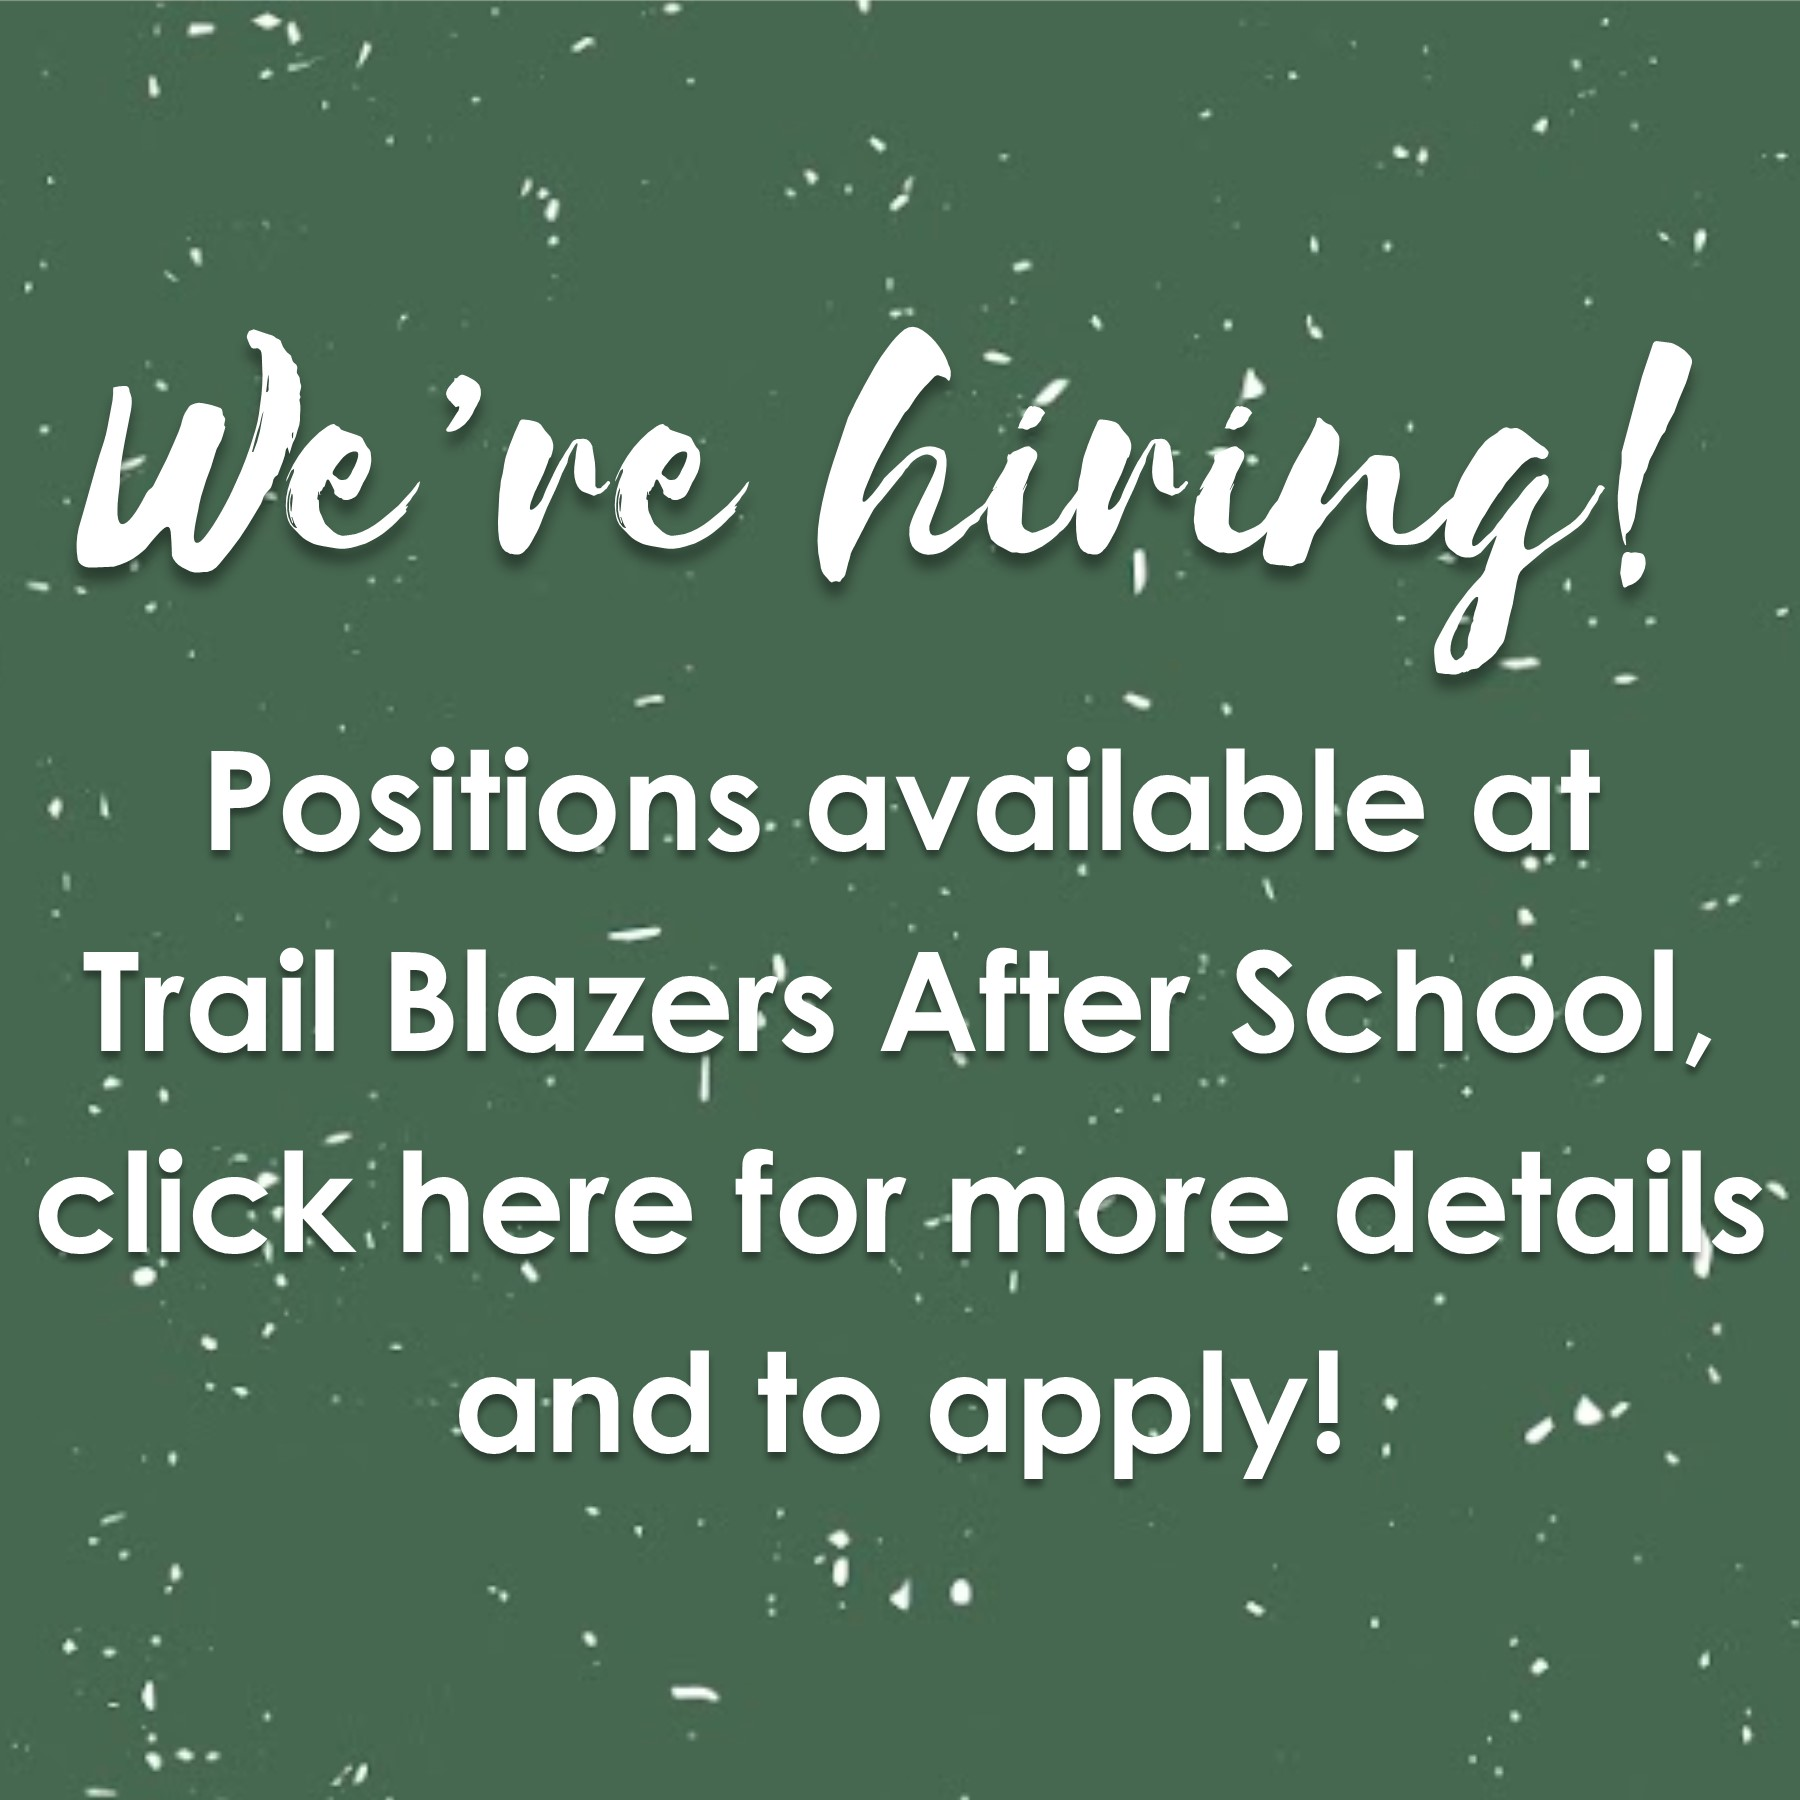 We're hiring for fall 2021